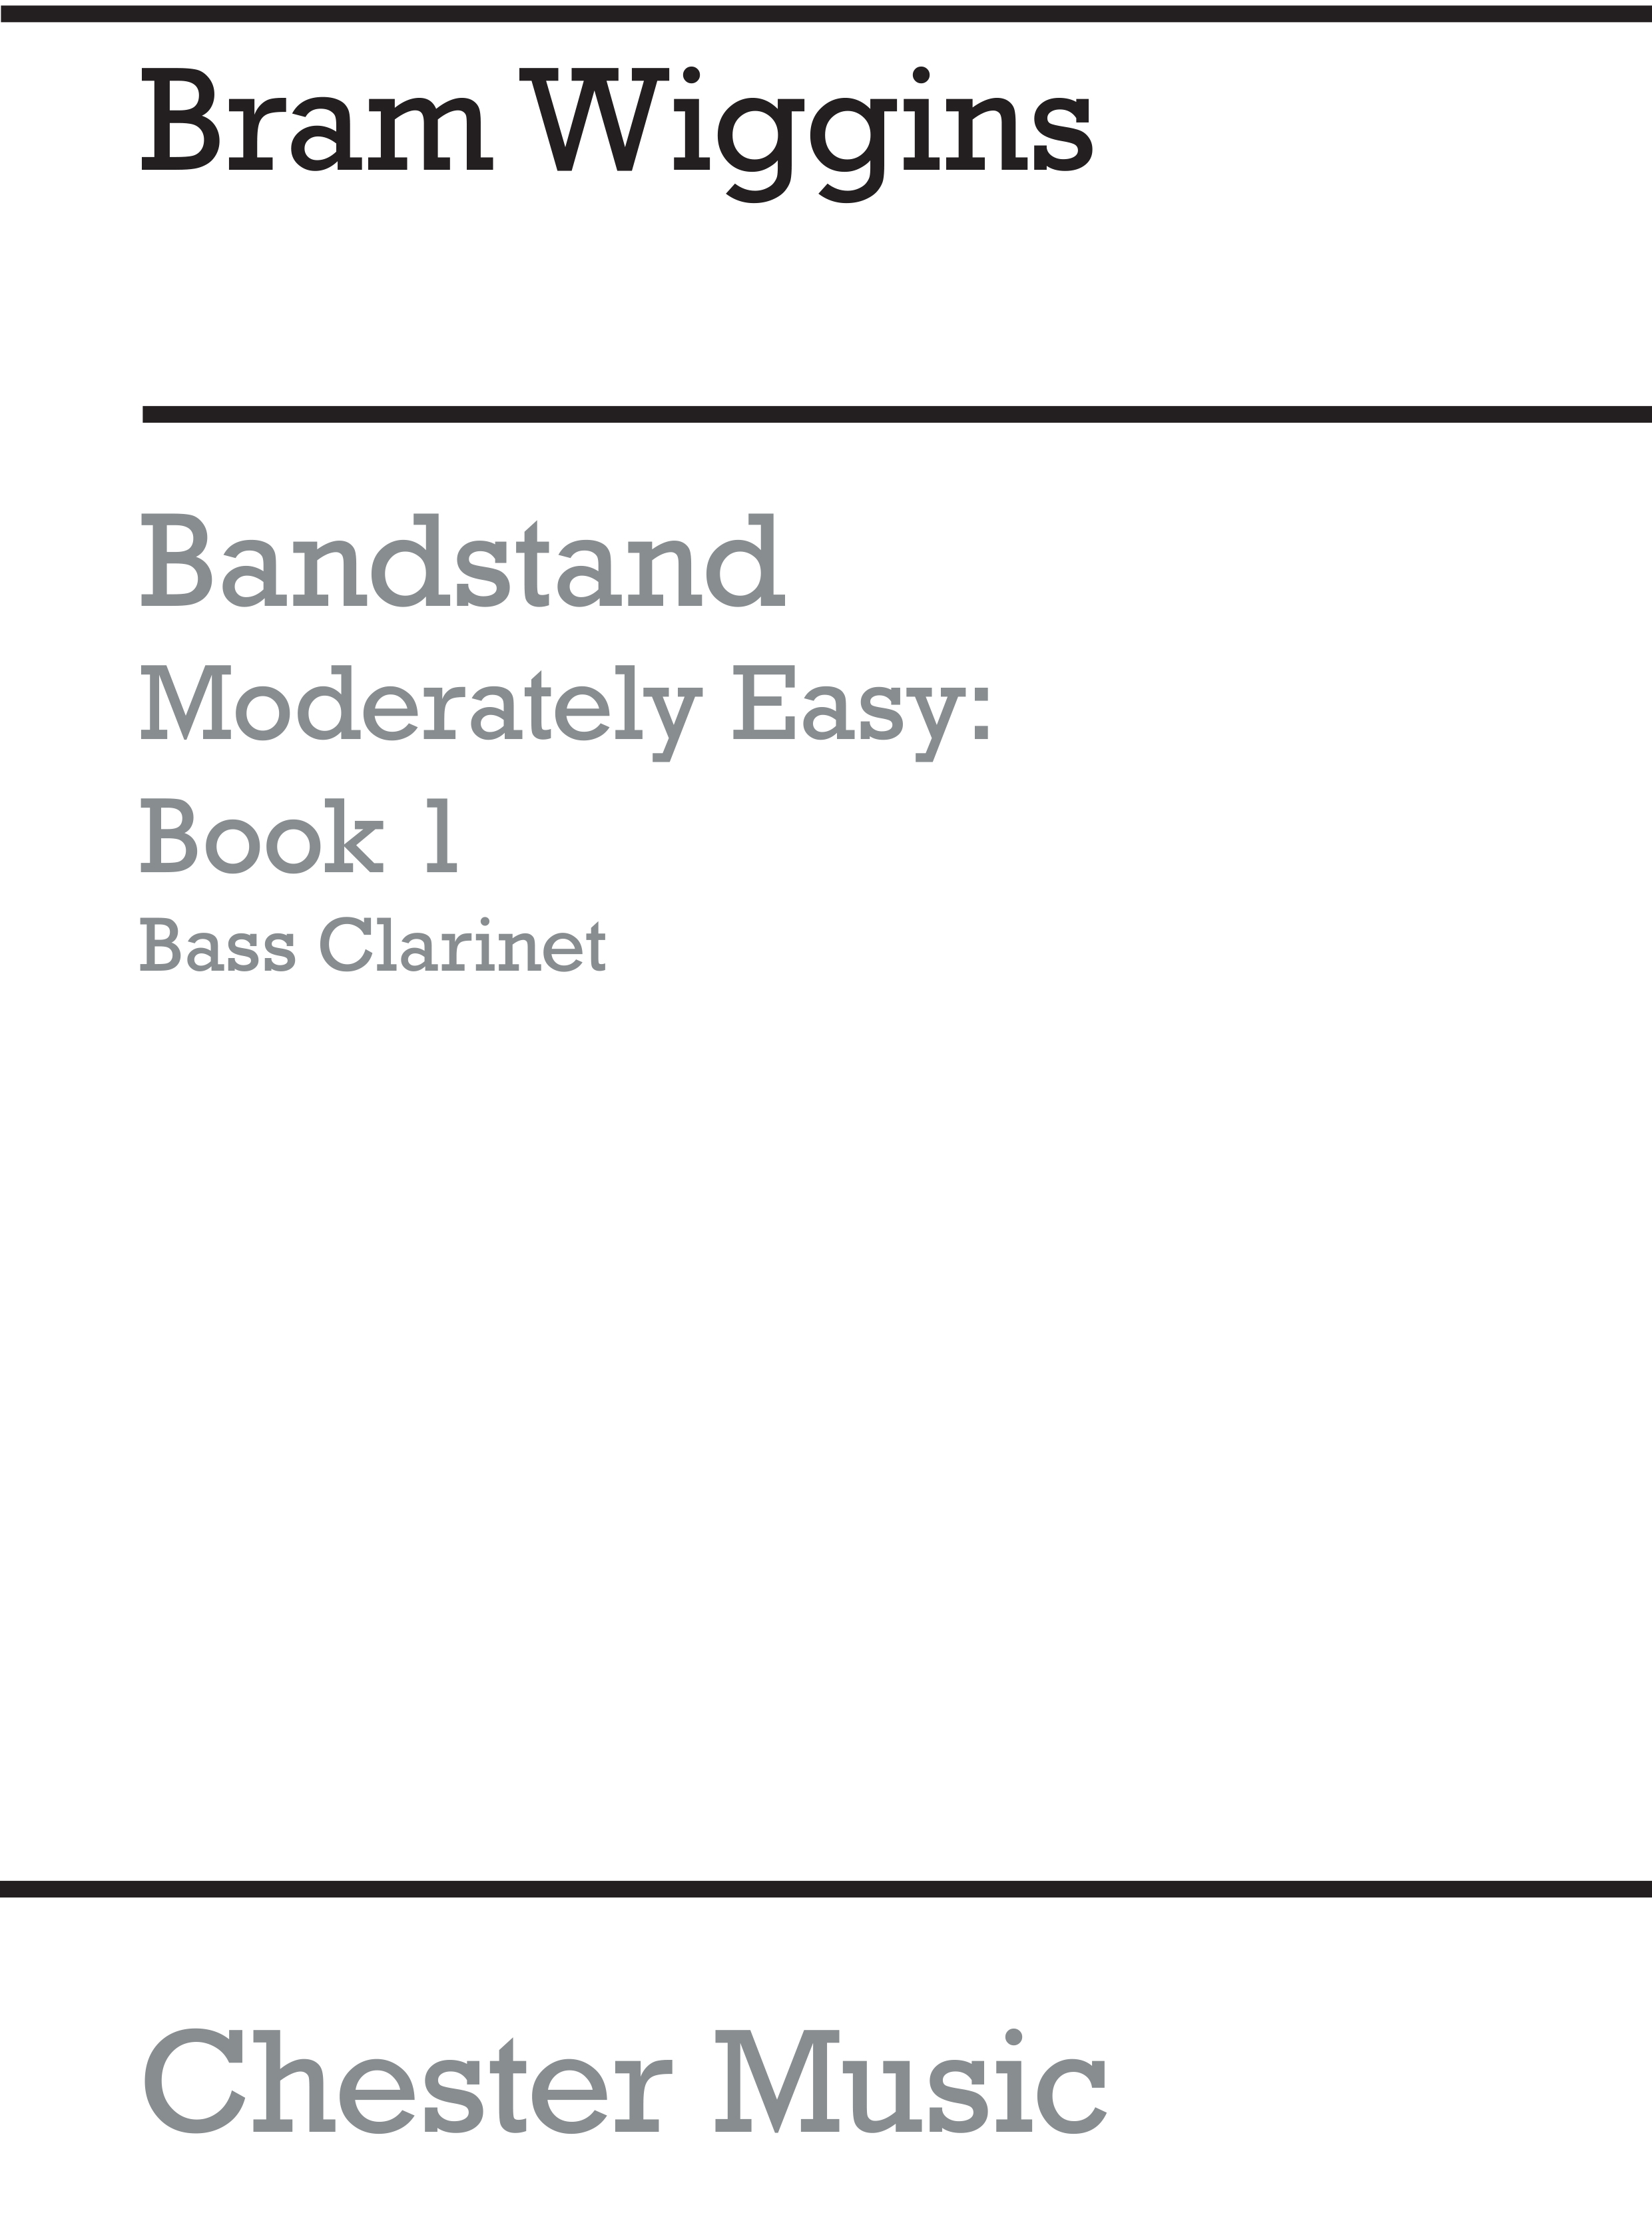 Bram Wiggins: Bandstand Moderately Easy Book 1 (Bass Clarinet): Concert Band: